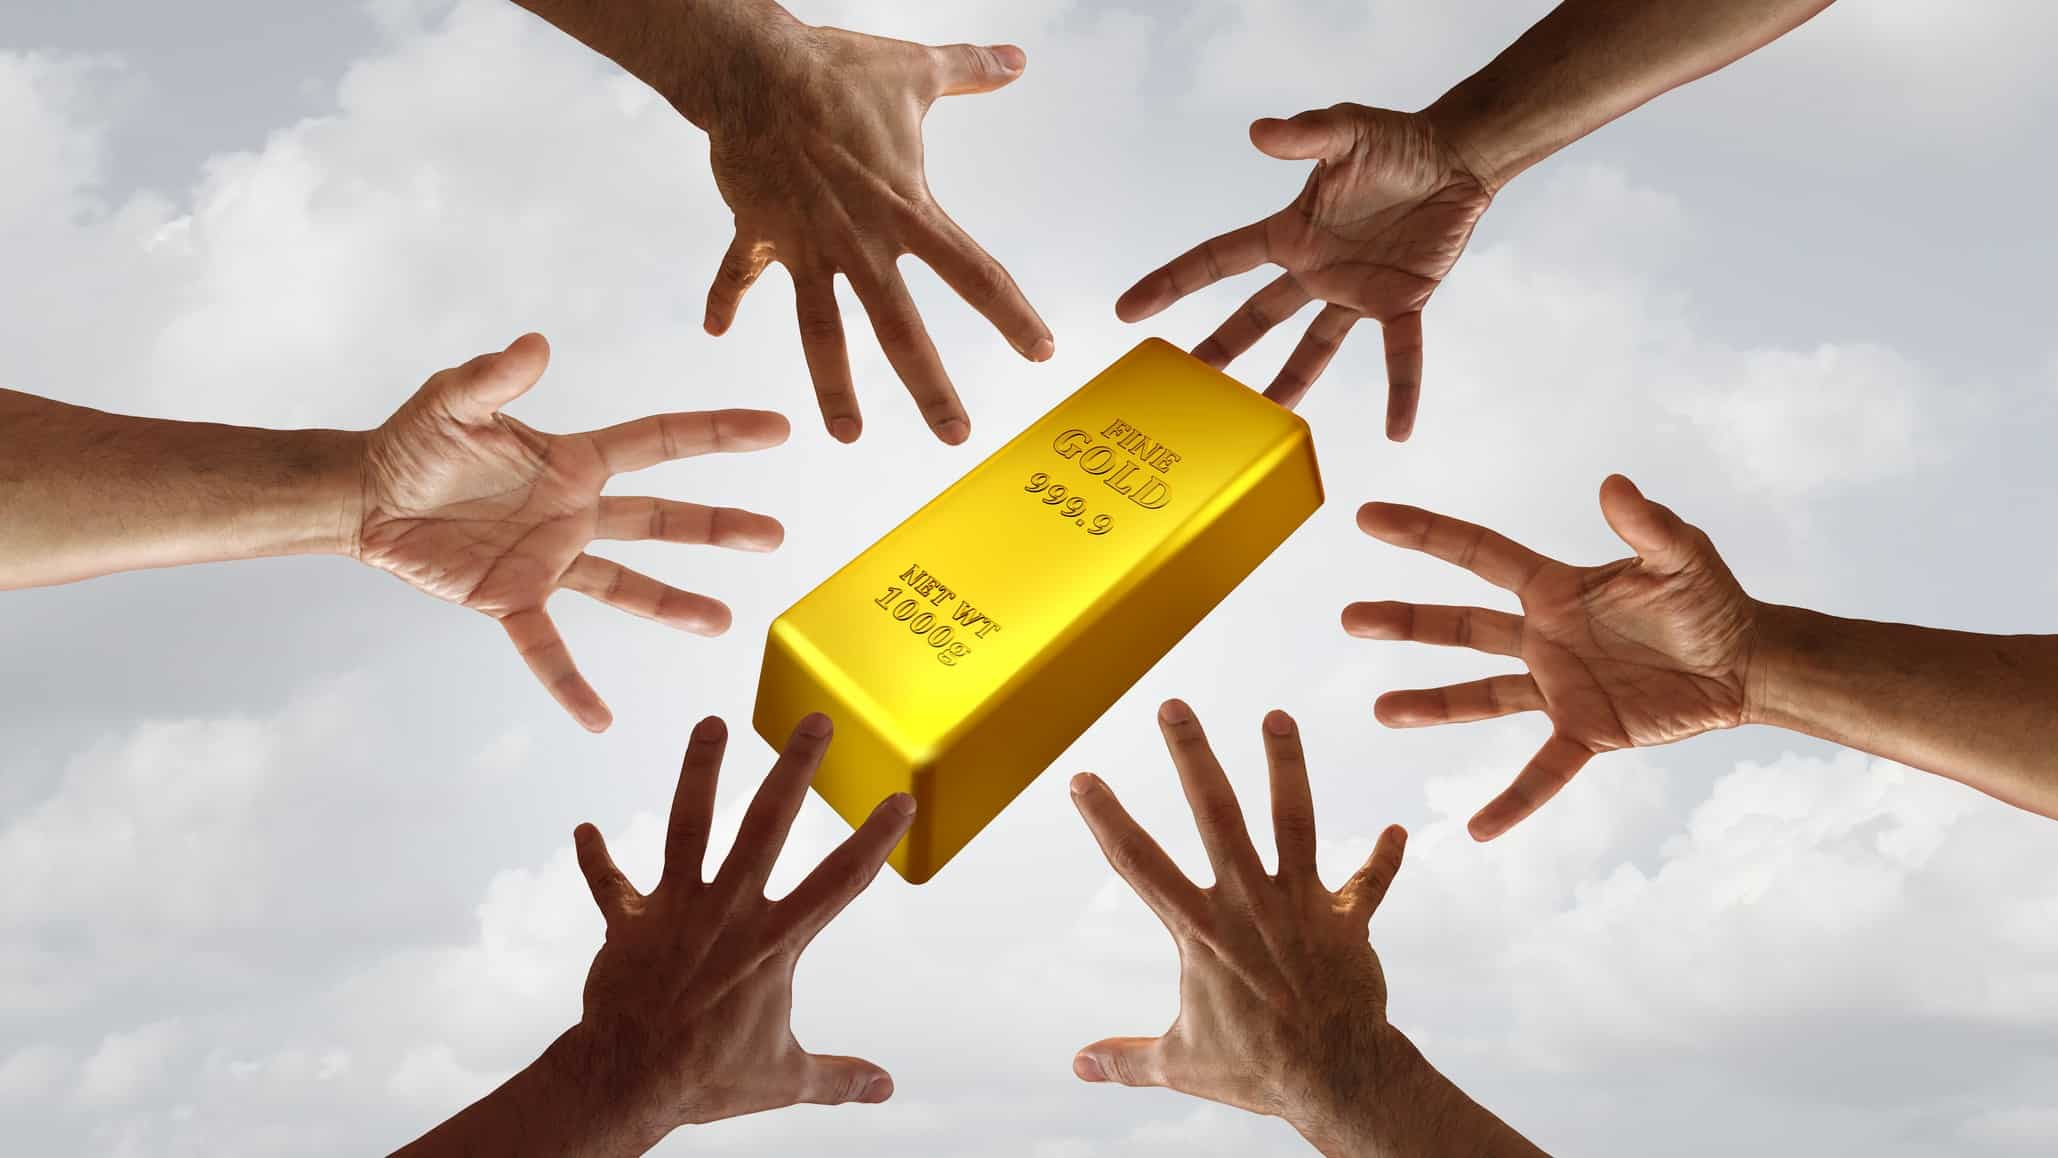 Rising gold asx share price buy represented by multiple hands grabbing at gold bullion